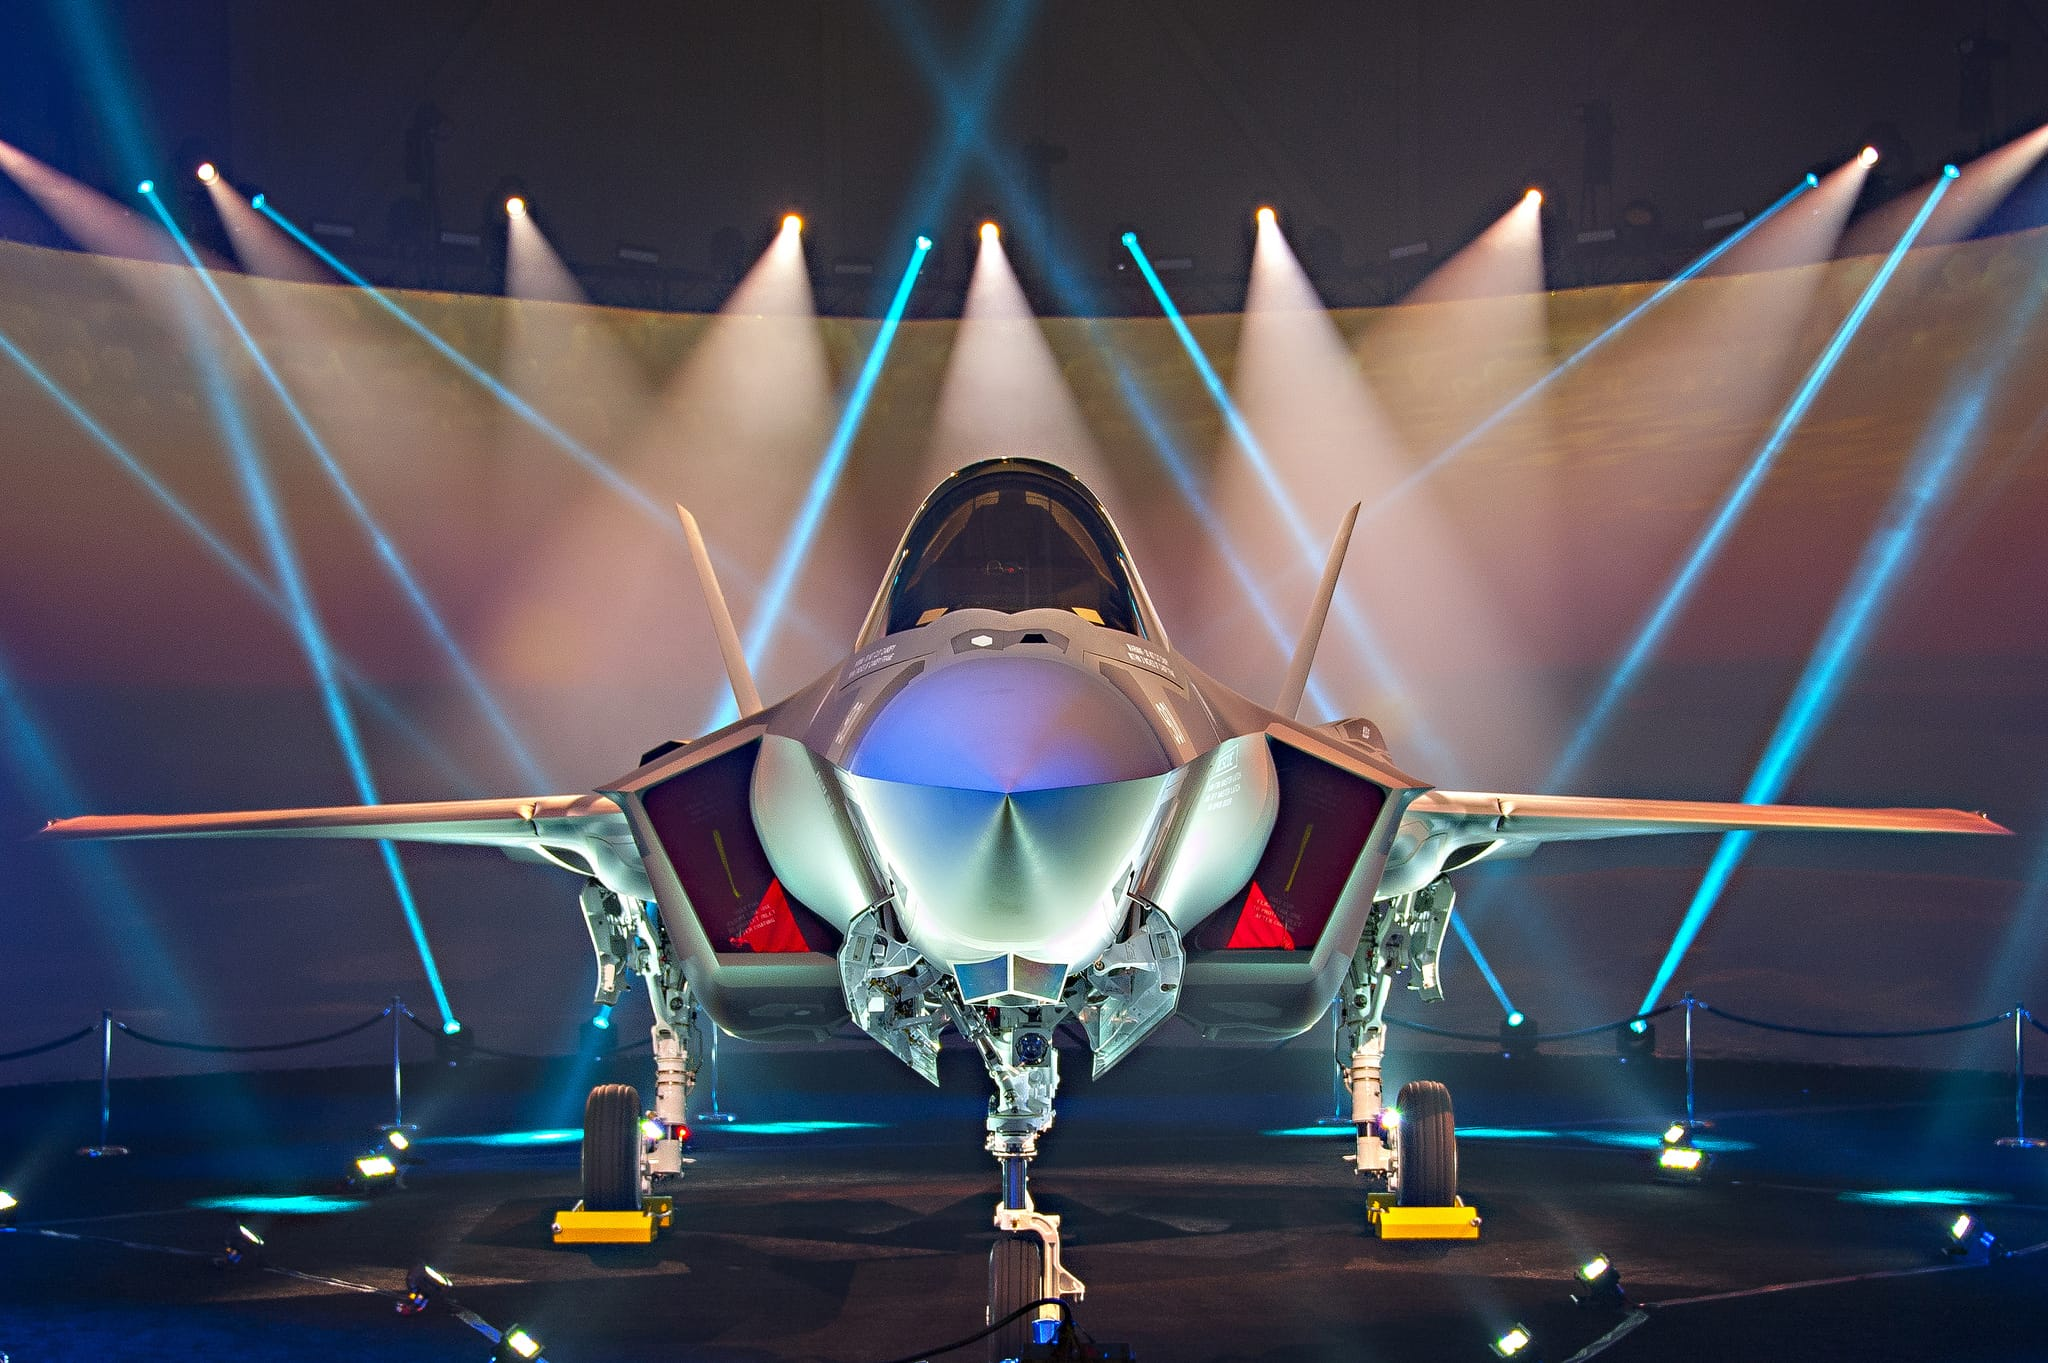 Turkey F-35 Joint Strike Fighter: delivery begins from Lockheed